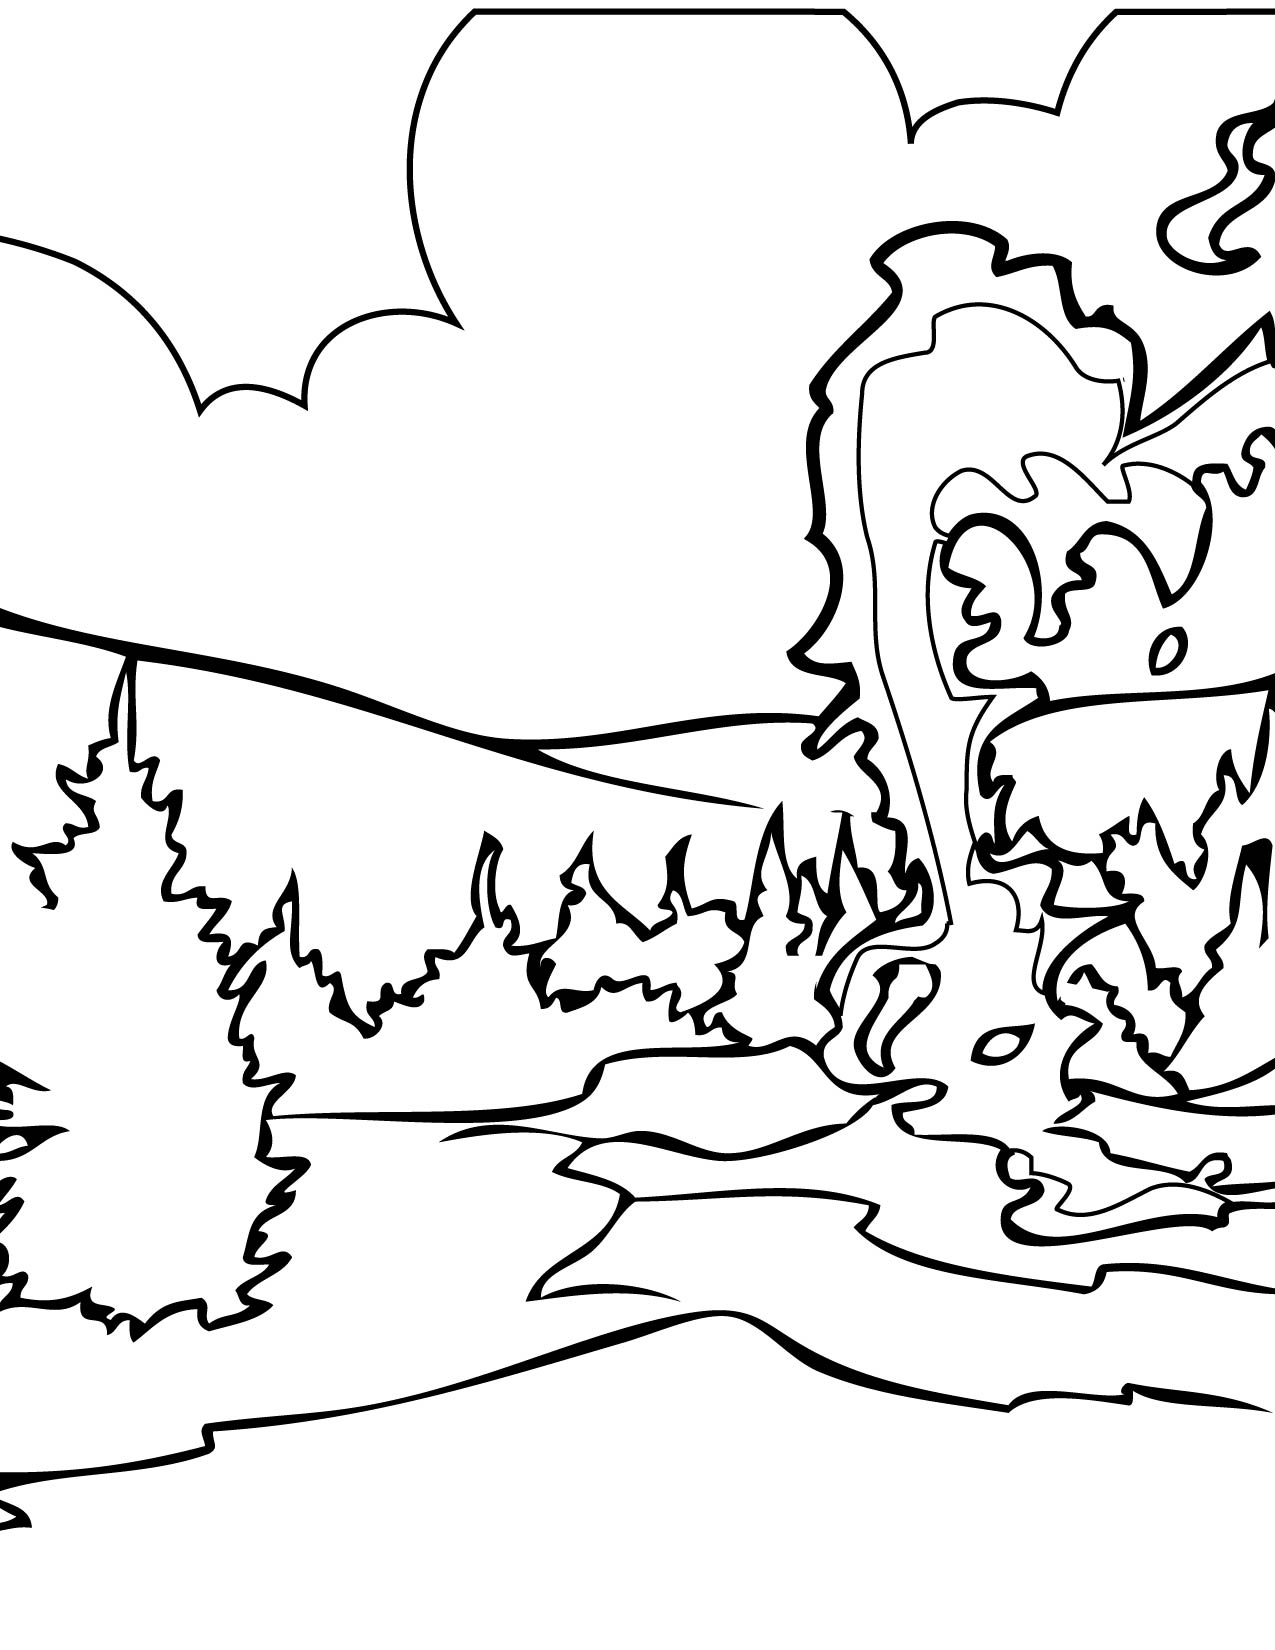 yellowstone national park coloring pages printable yellowstone park coloring american wildlife kids yellowstone park coloring national pages